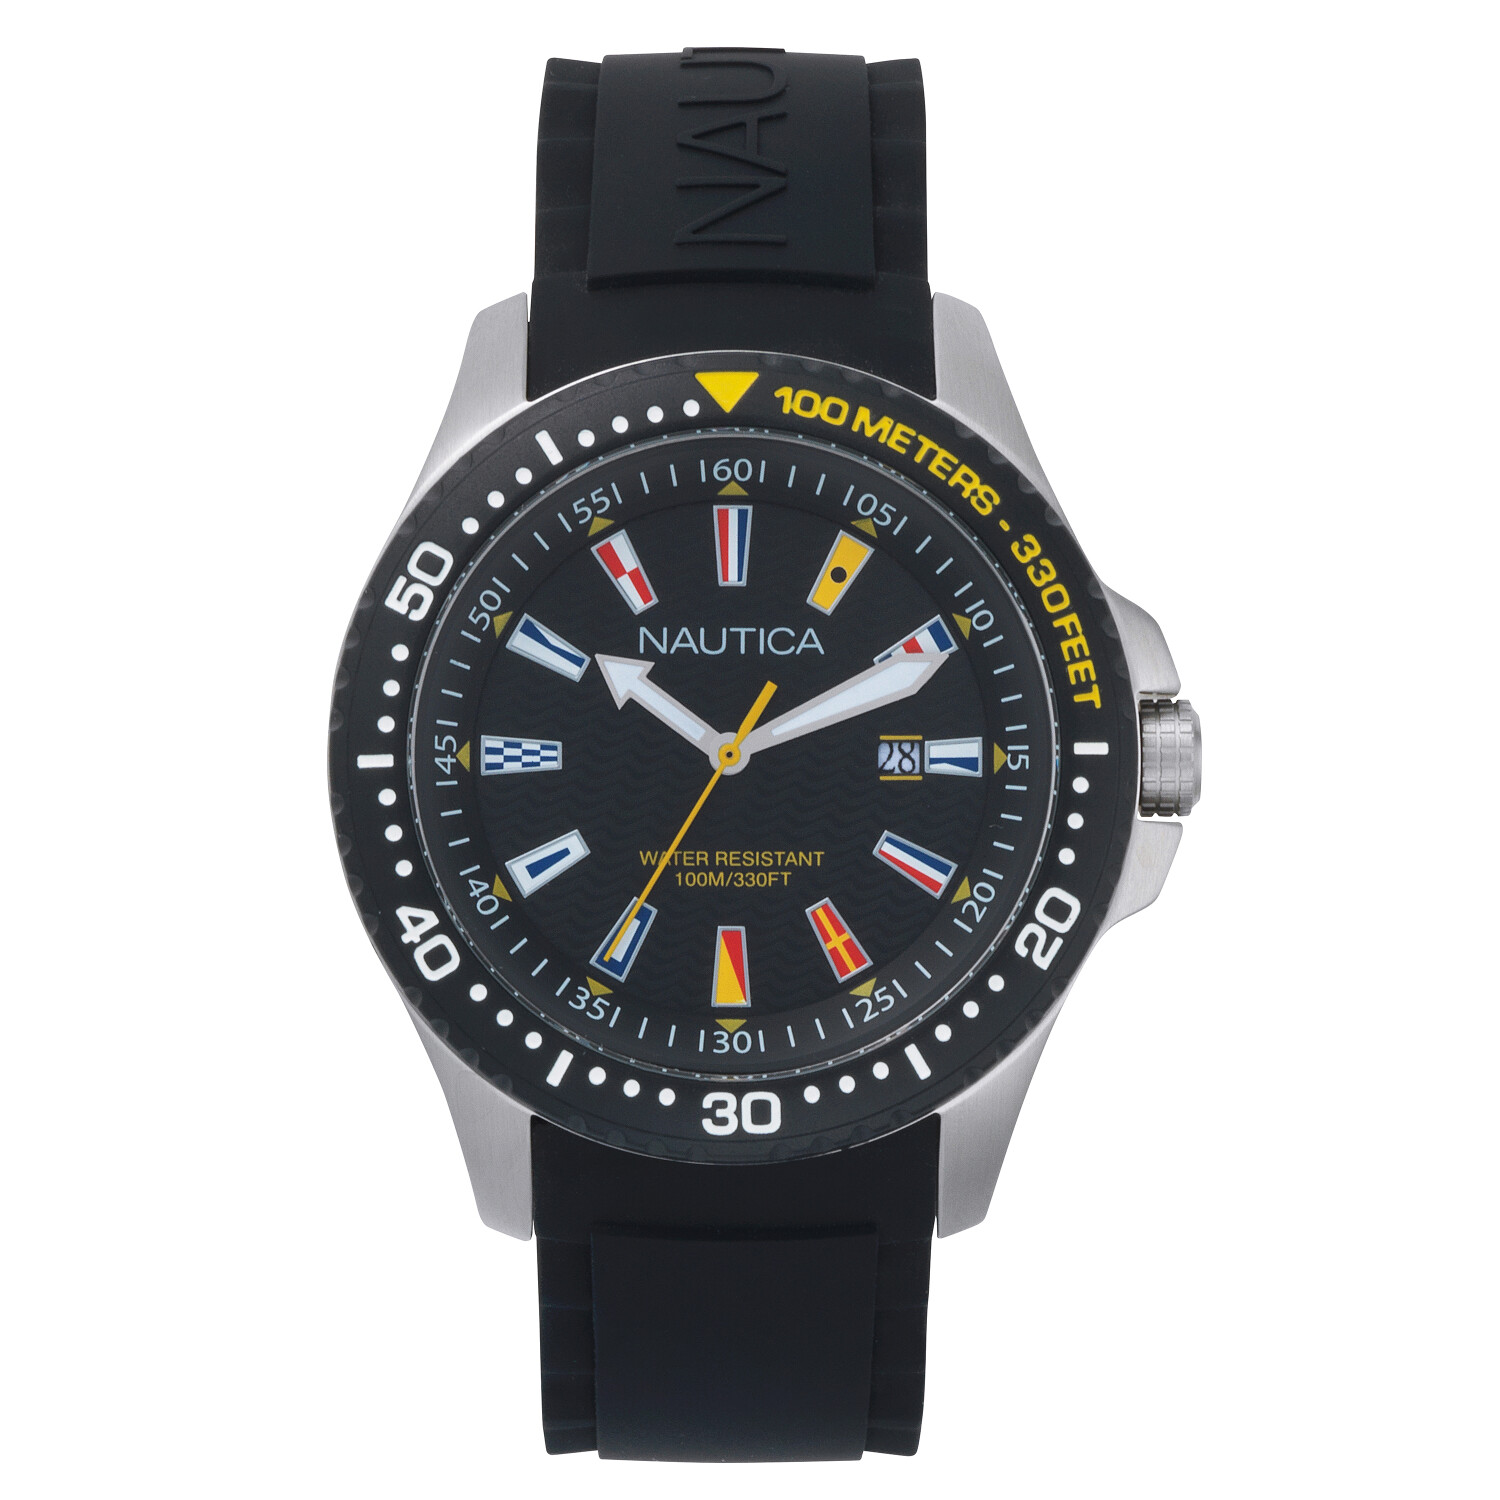 Nautica Watch NAPJBC003 Jones Beach, Analog, Water Resistant, Silicone Band, Adjustable Buckle, 3 Hand Automatic Movement, Black